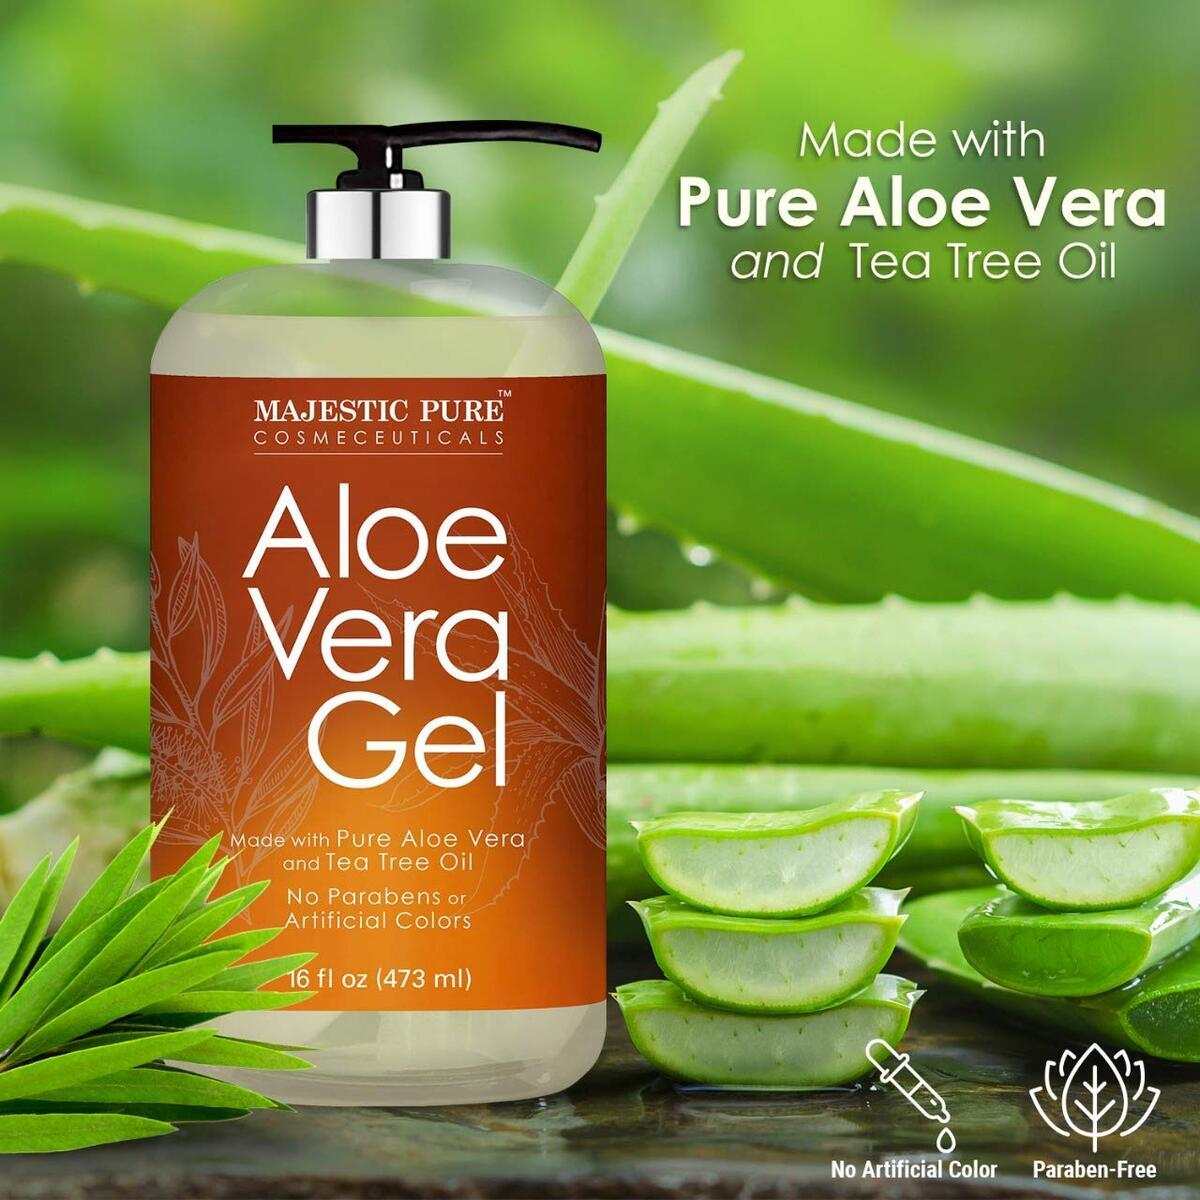 Pure Aloe Vera Gel with Tea Tree Essential Oil - Moisturizes, and Nourishes Skin - Soothes Sunburn, Bites, Rashes, Small Cuts & Eczema - (Packaging May Vary) - 16 fl oz